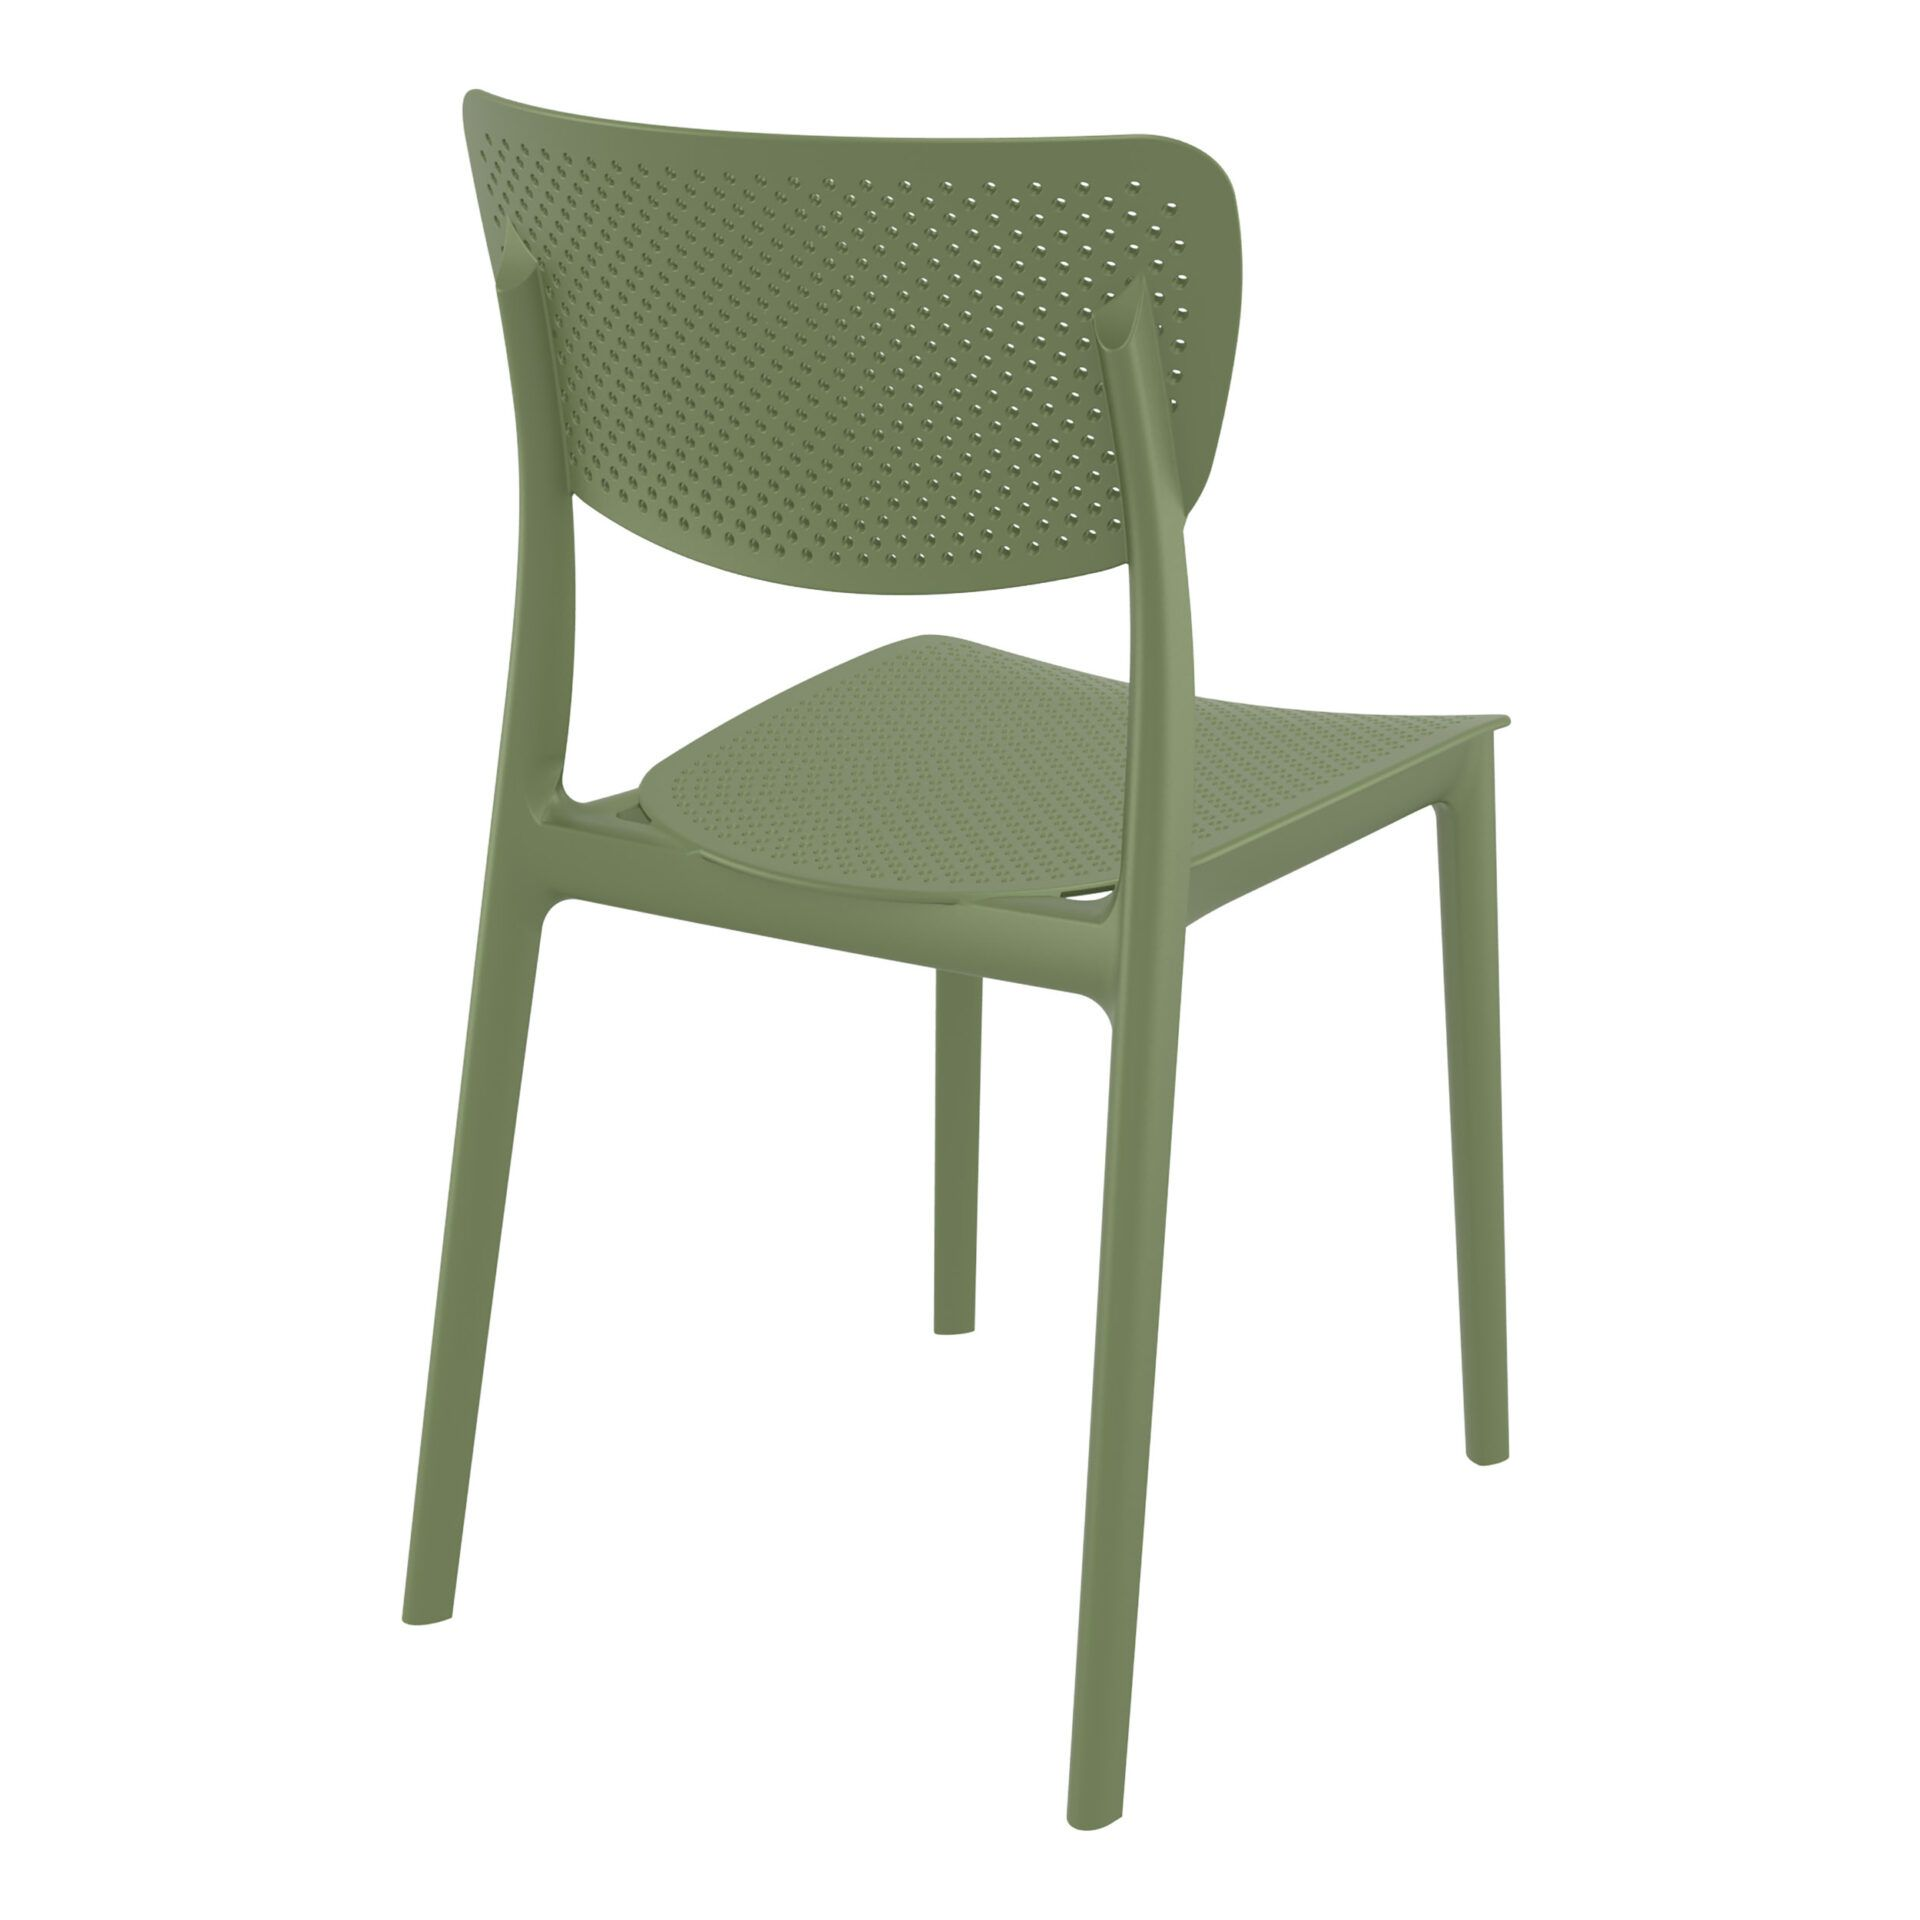 polypropylene hospitality seating lucy chair olive green back side